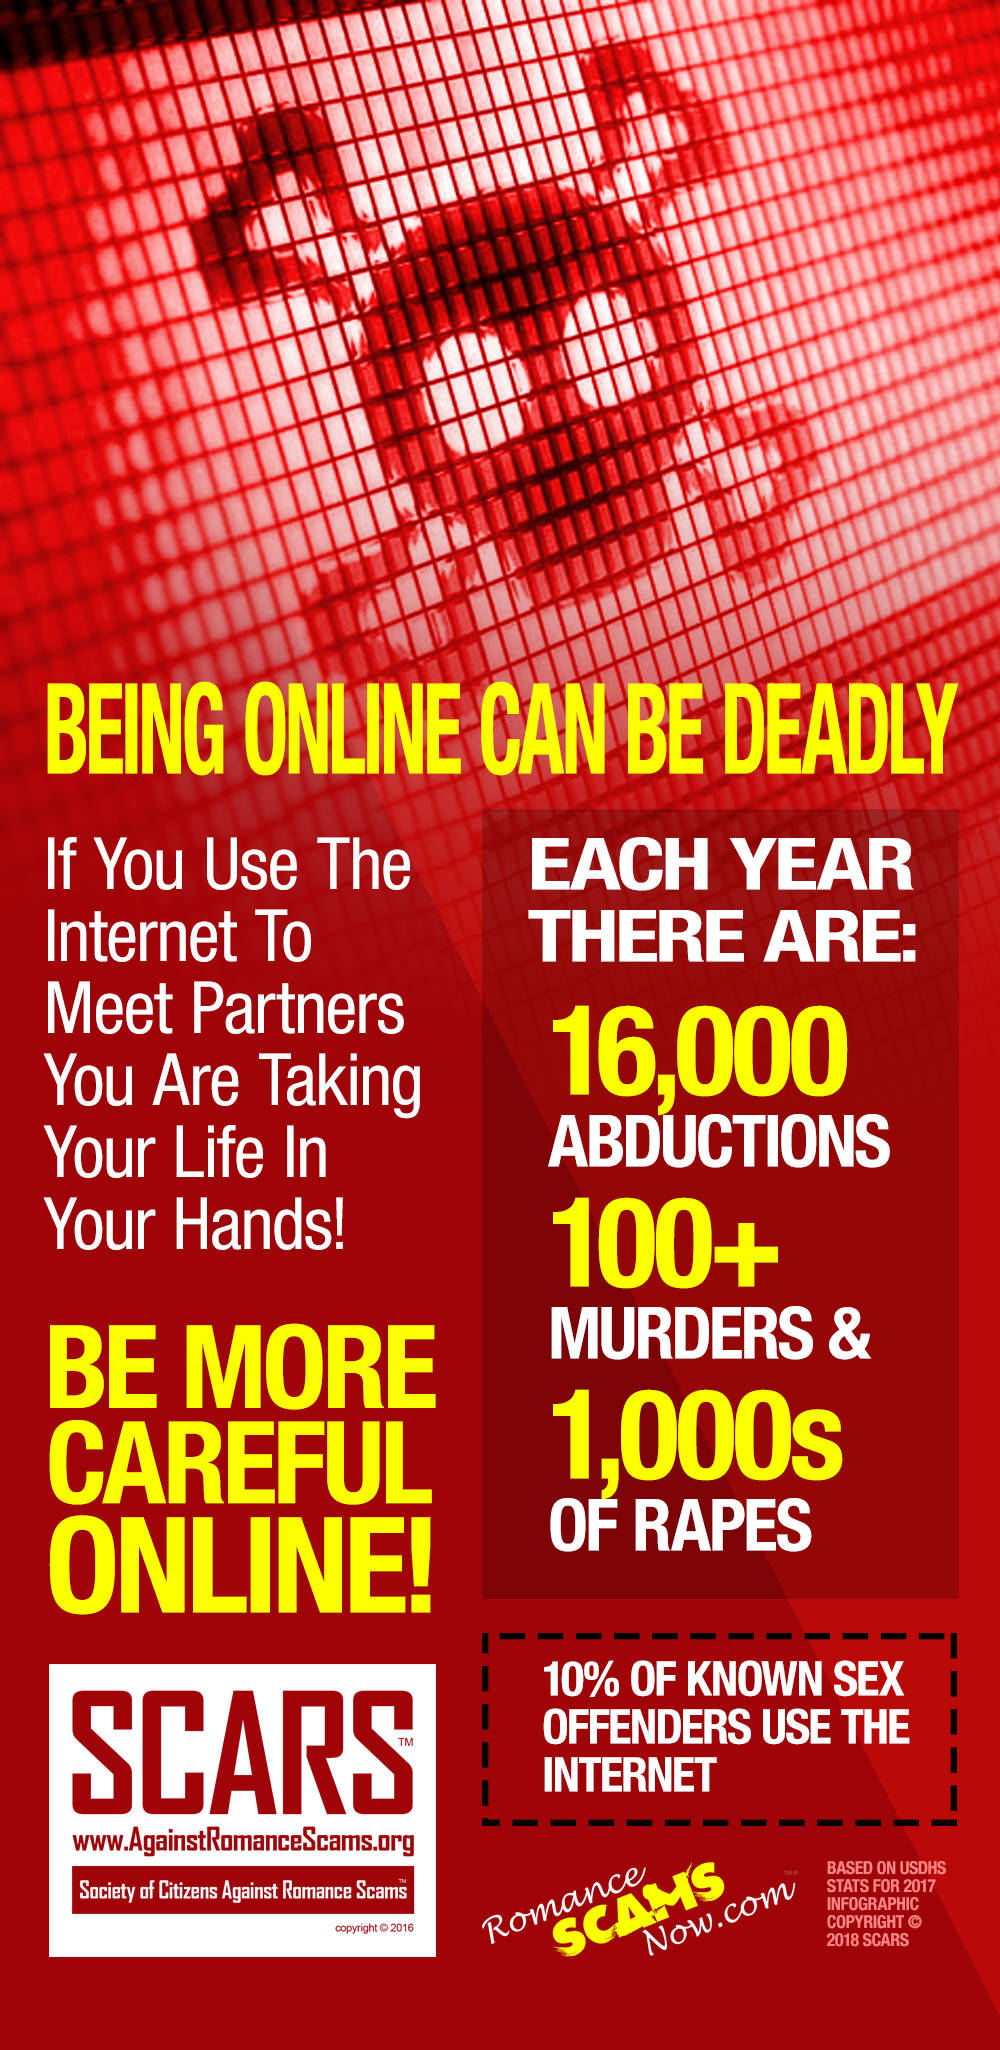 Being Online Can Be Deadly - Be More Careful - SCARS Infographic